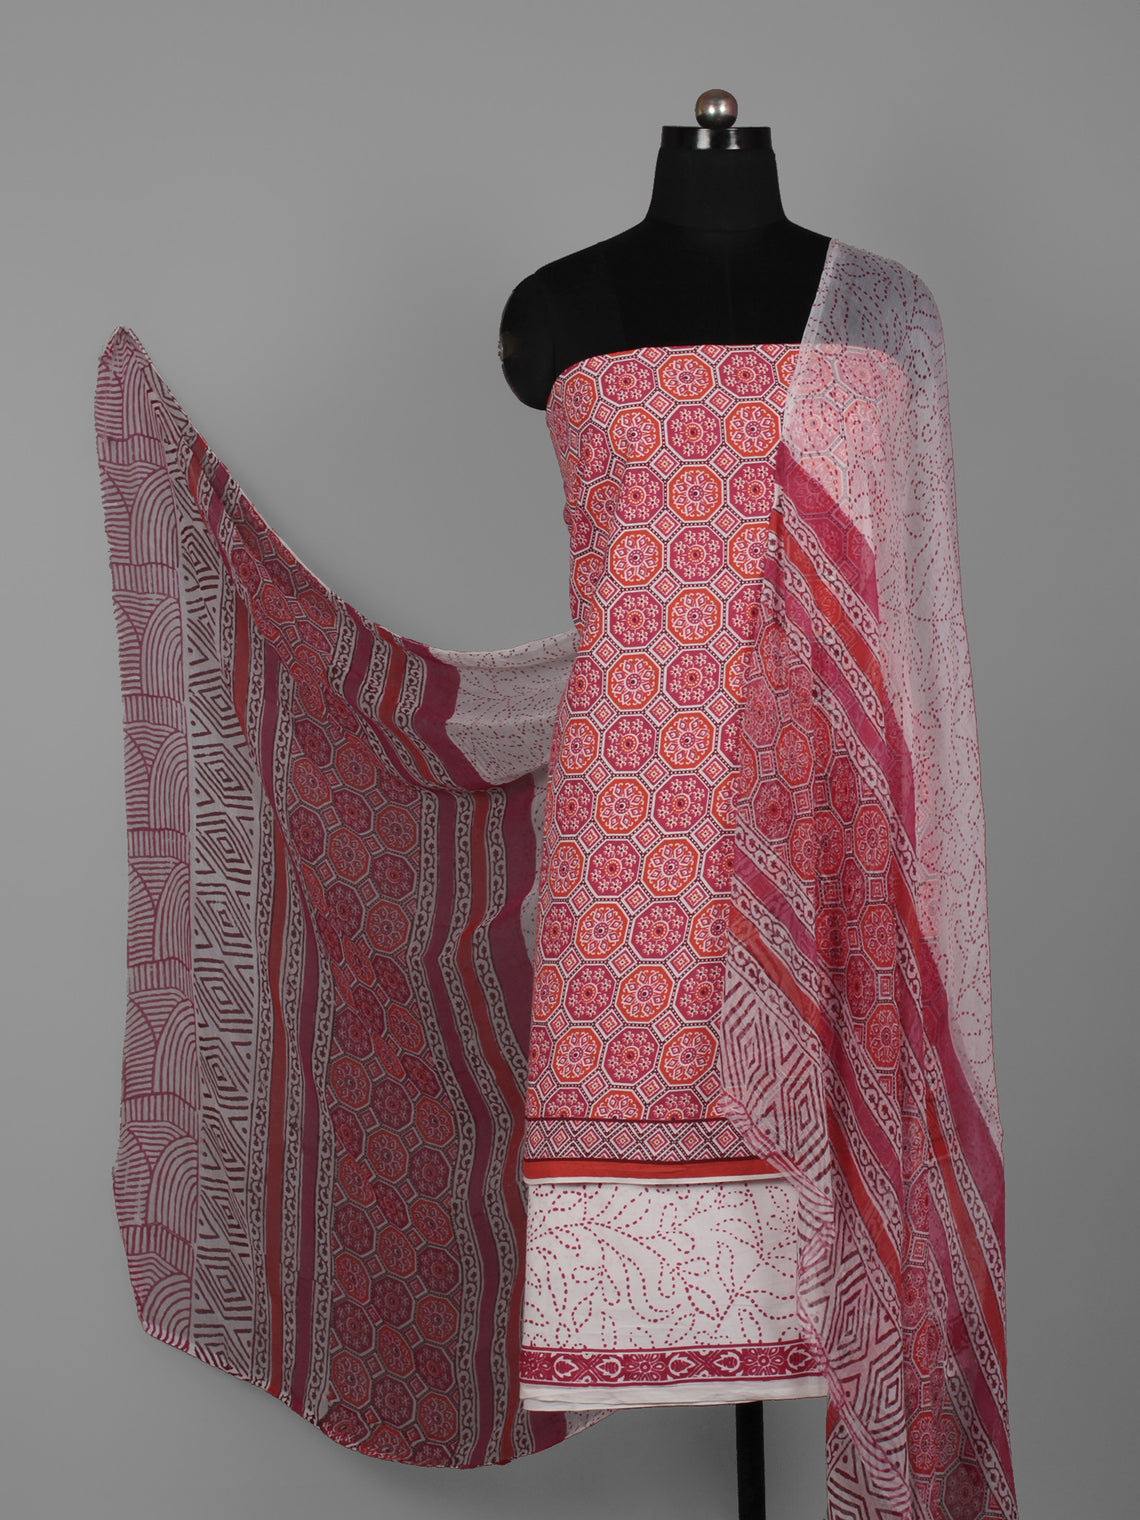 Red Pink Ivory Hand Block Printed Cotton Suit-Salwar Fabric With Chiffon Dupatta (Set of 3) - S16281276